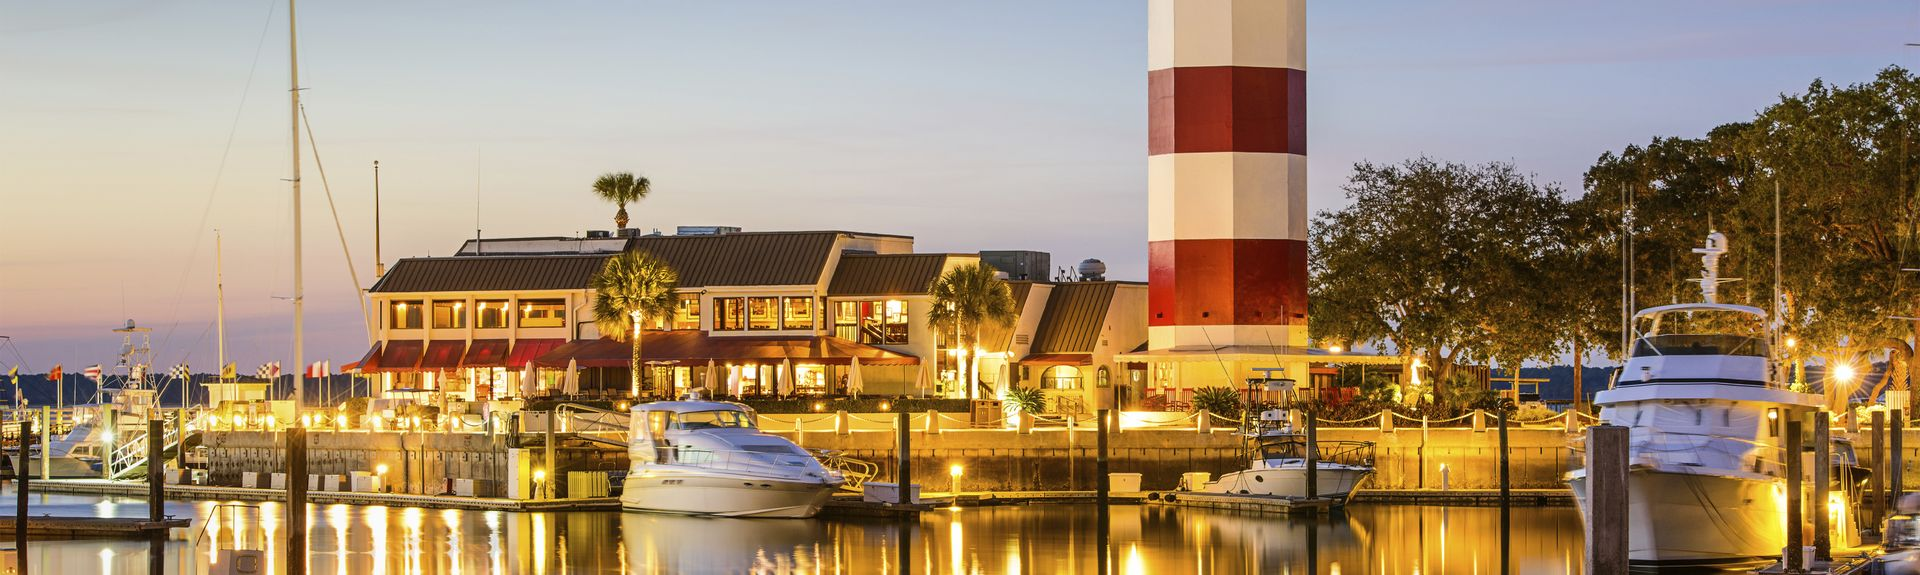 Seascape Villas, Hilton Head Island, SC, USA